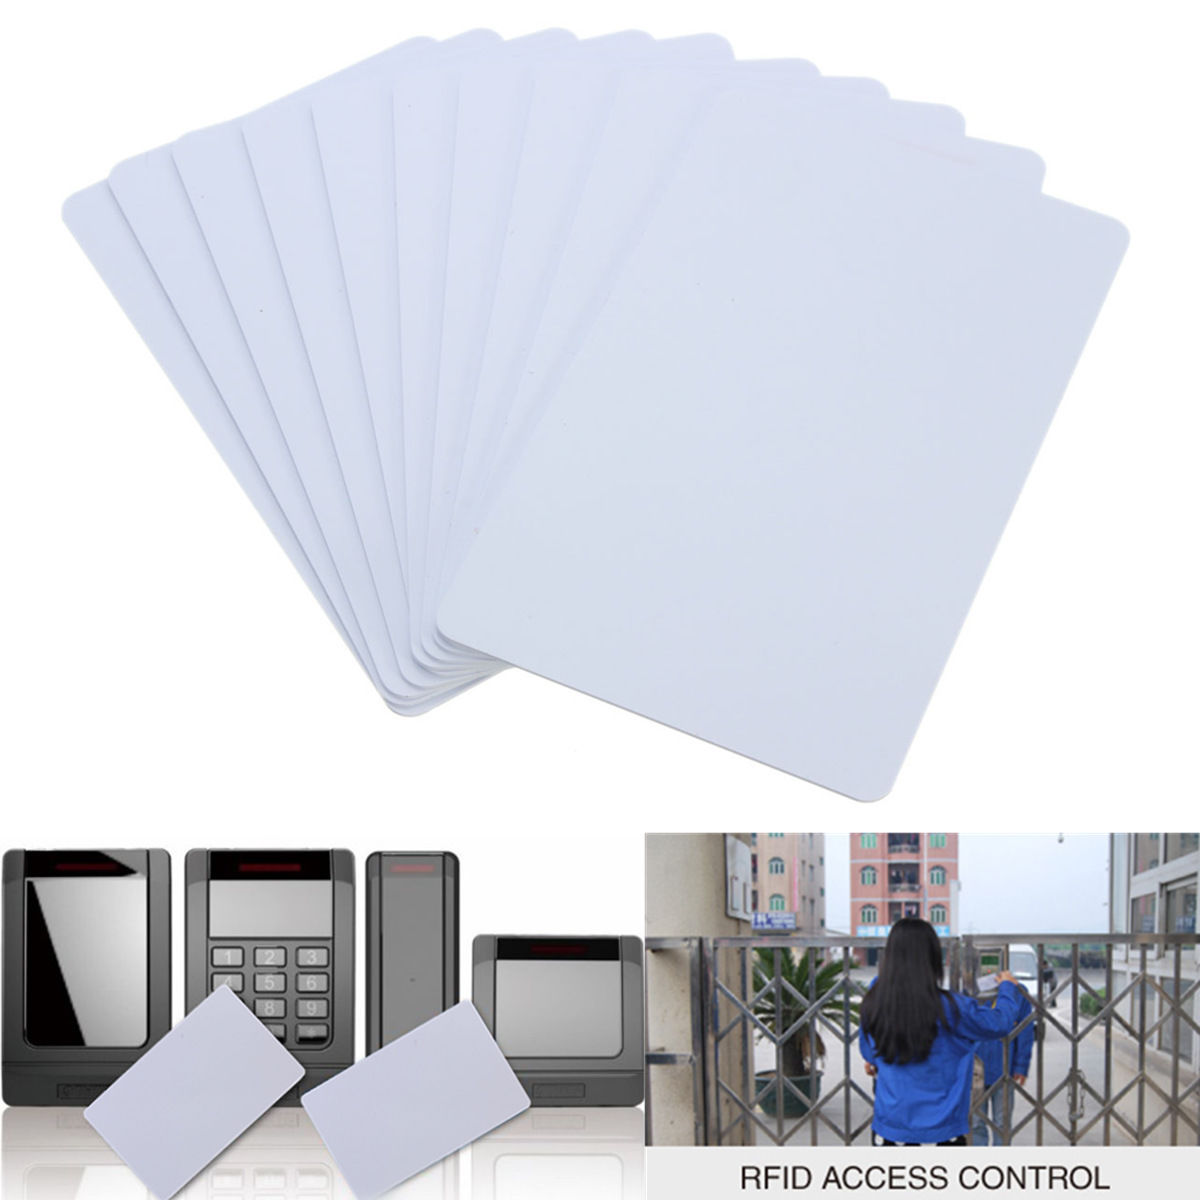 10 Pcs Blank NFC Smart Card Tag Tags1k S50 IC 13.56MHz Read And Write RFID Rewritable Wholesale IC White Cards